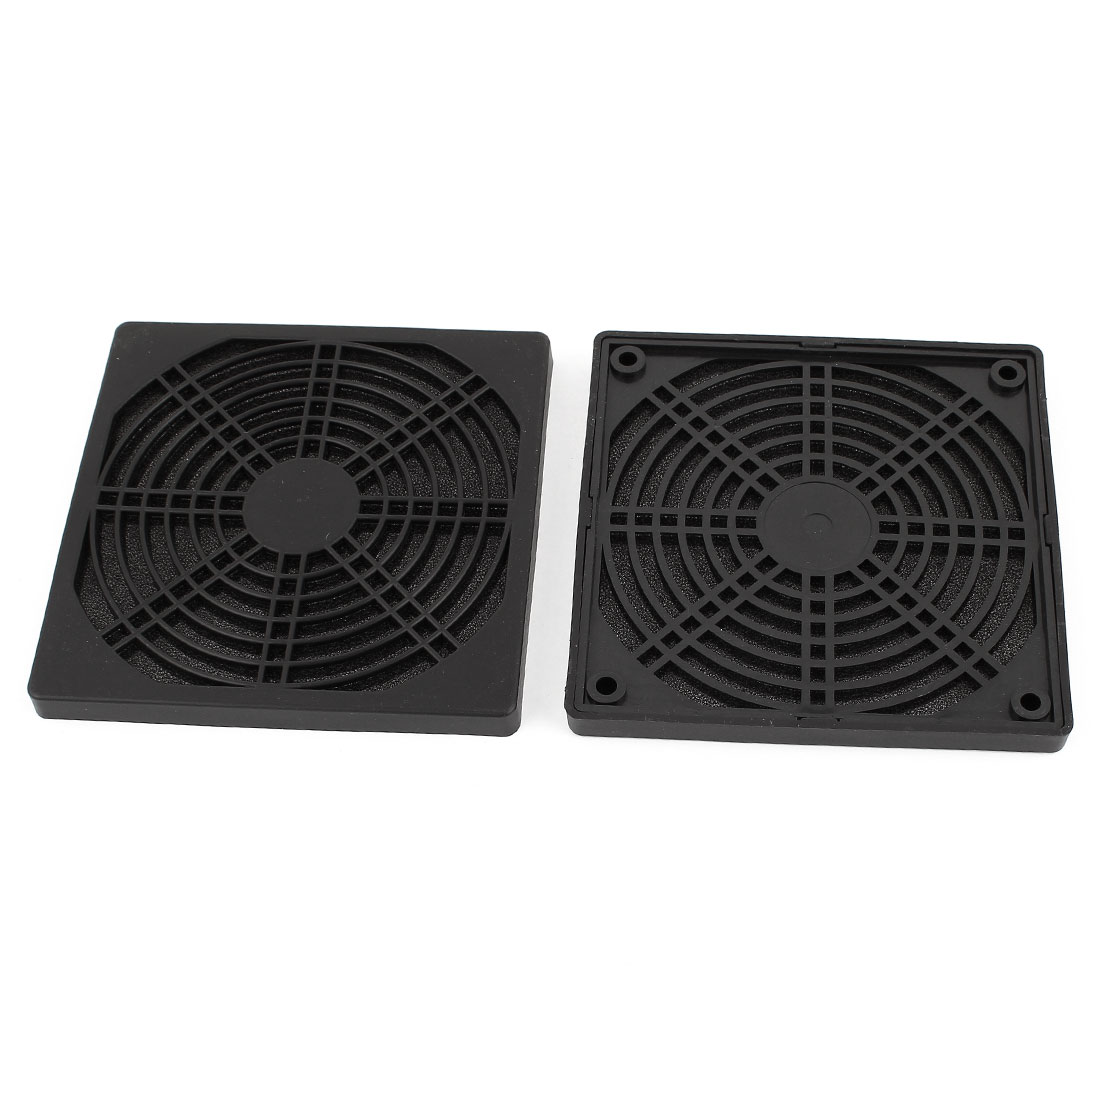 2 Pieces Dustproof Dust Filter Guard Grill Cover for 120mm PC Computer Case Fan